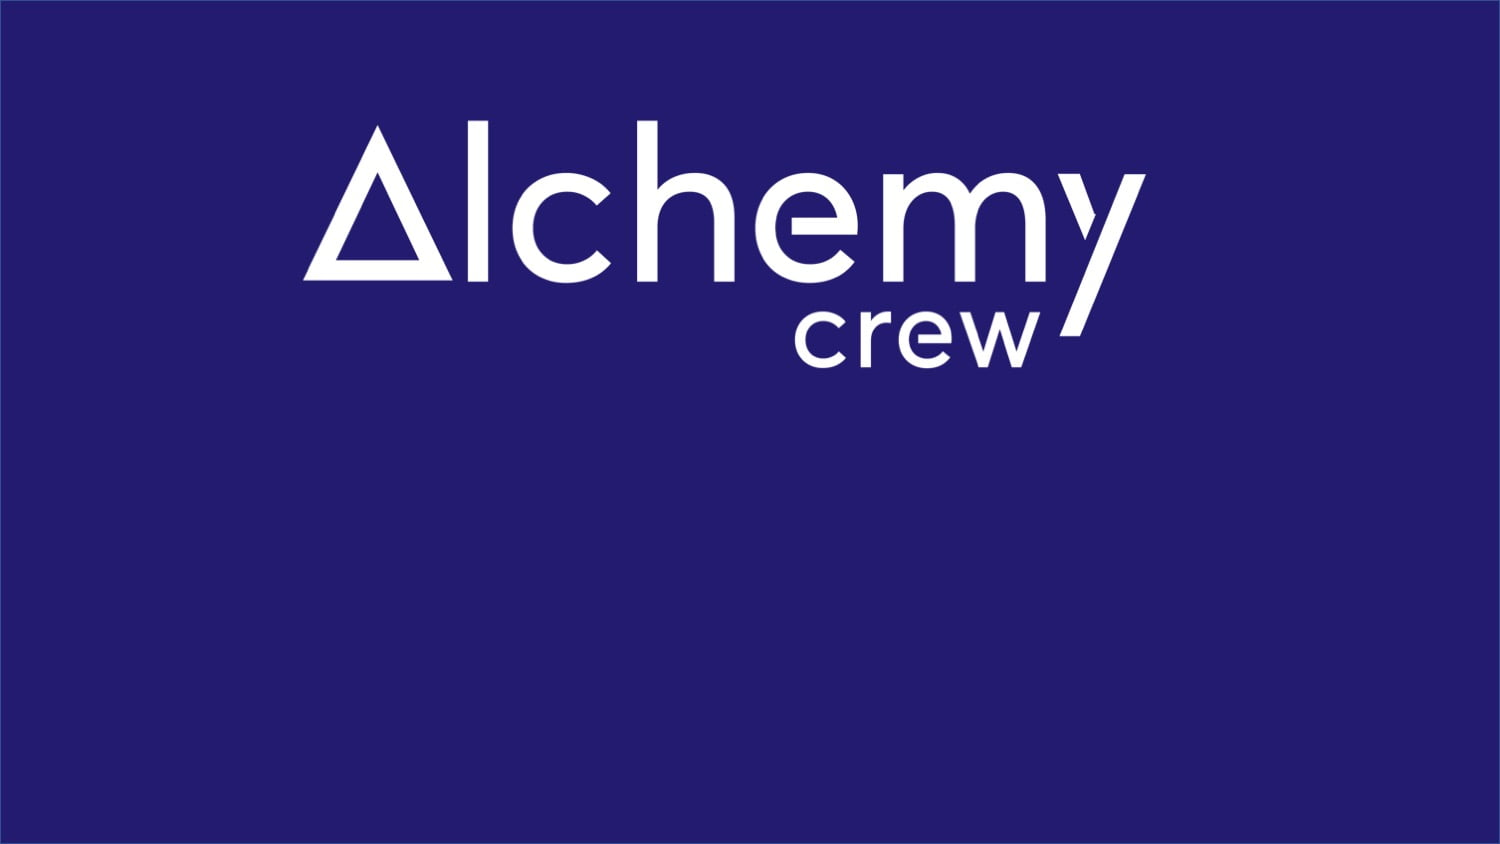 Insurance industry leaders join forces to launch Alchemy Crew: A new venture validation firm